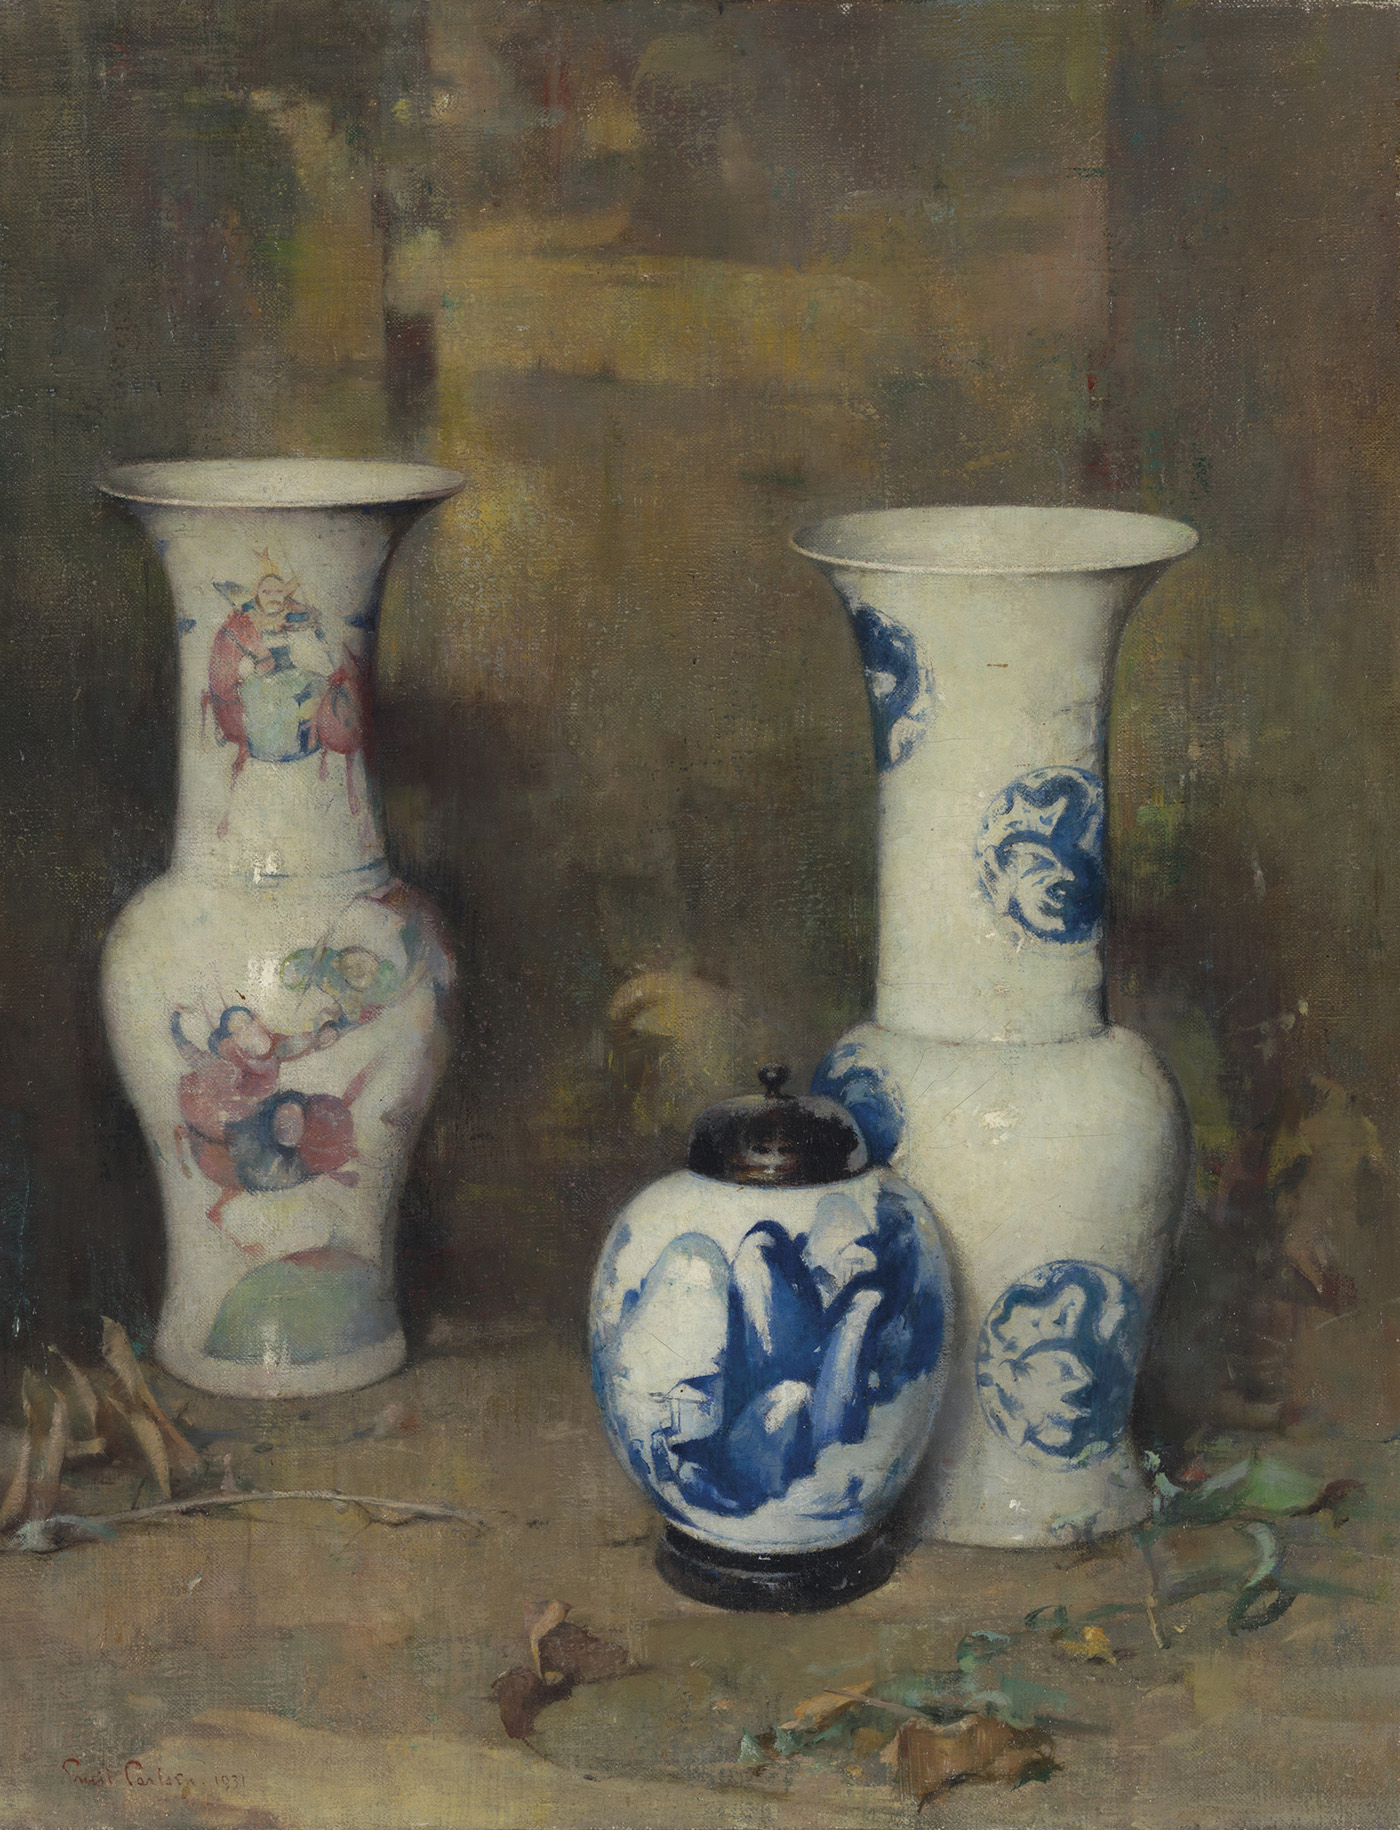 Emil Carlsen Ming Vases [And Ginger Jar], 1931